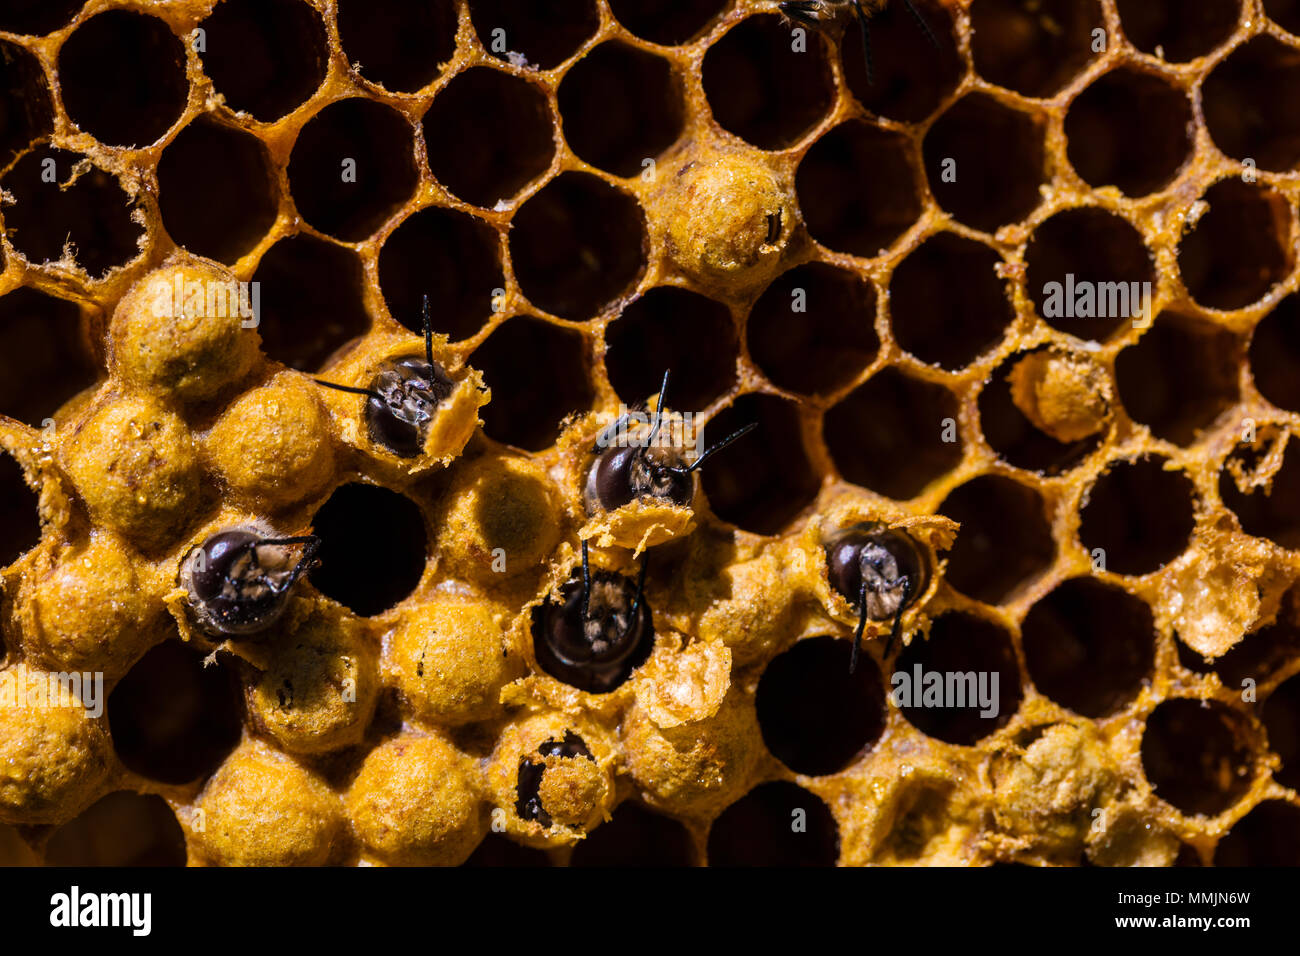 Newborn bee hatch from pilo on honeycomb in hive - Stock Image